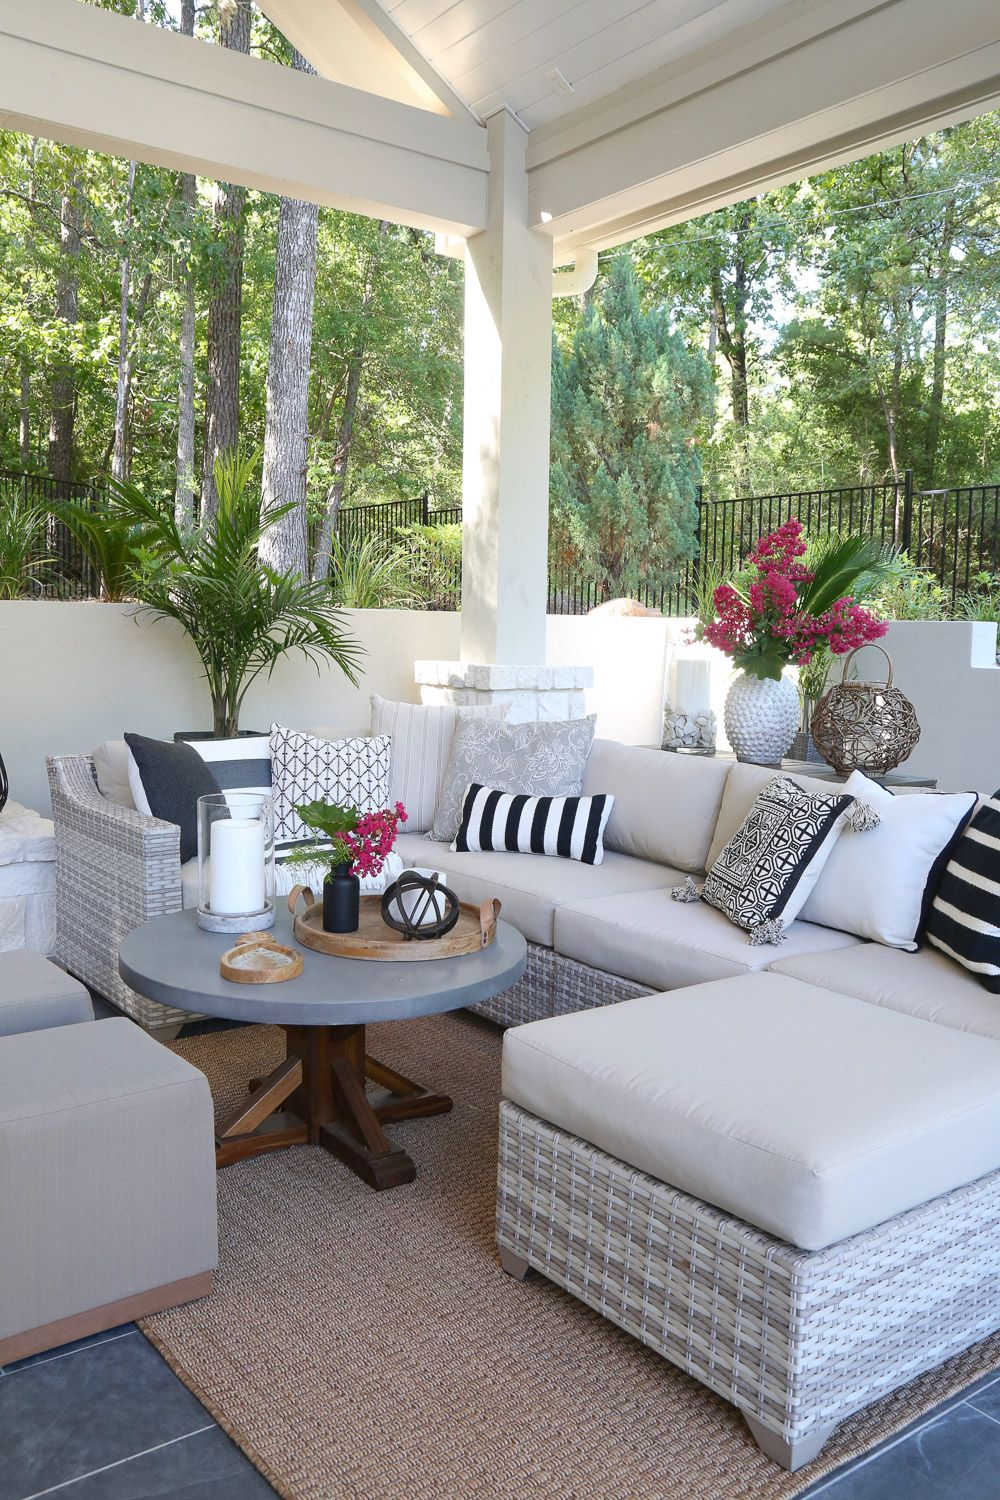 Photo of 5 Minute Outdoor Decorating Tips and Tricks